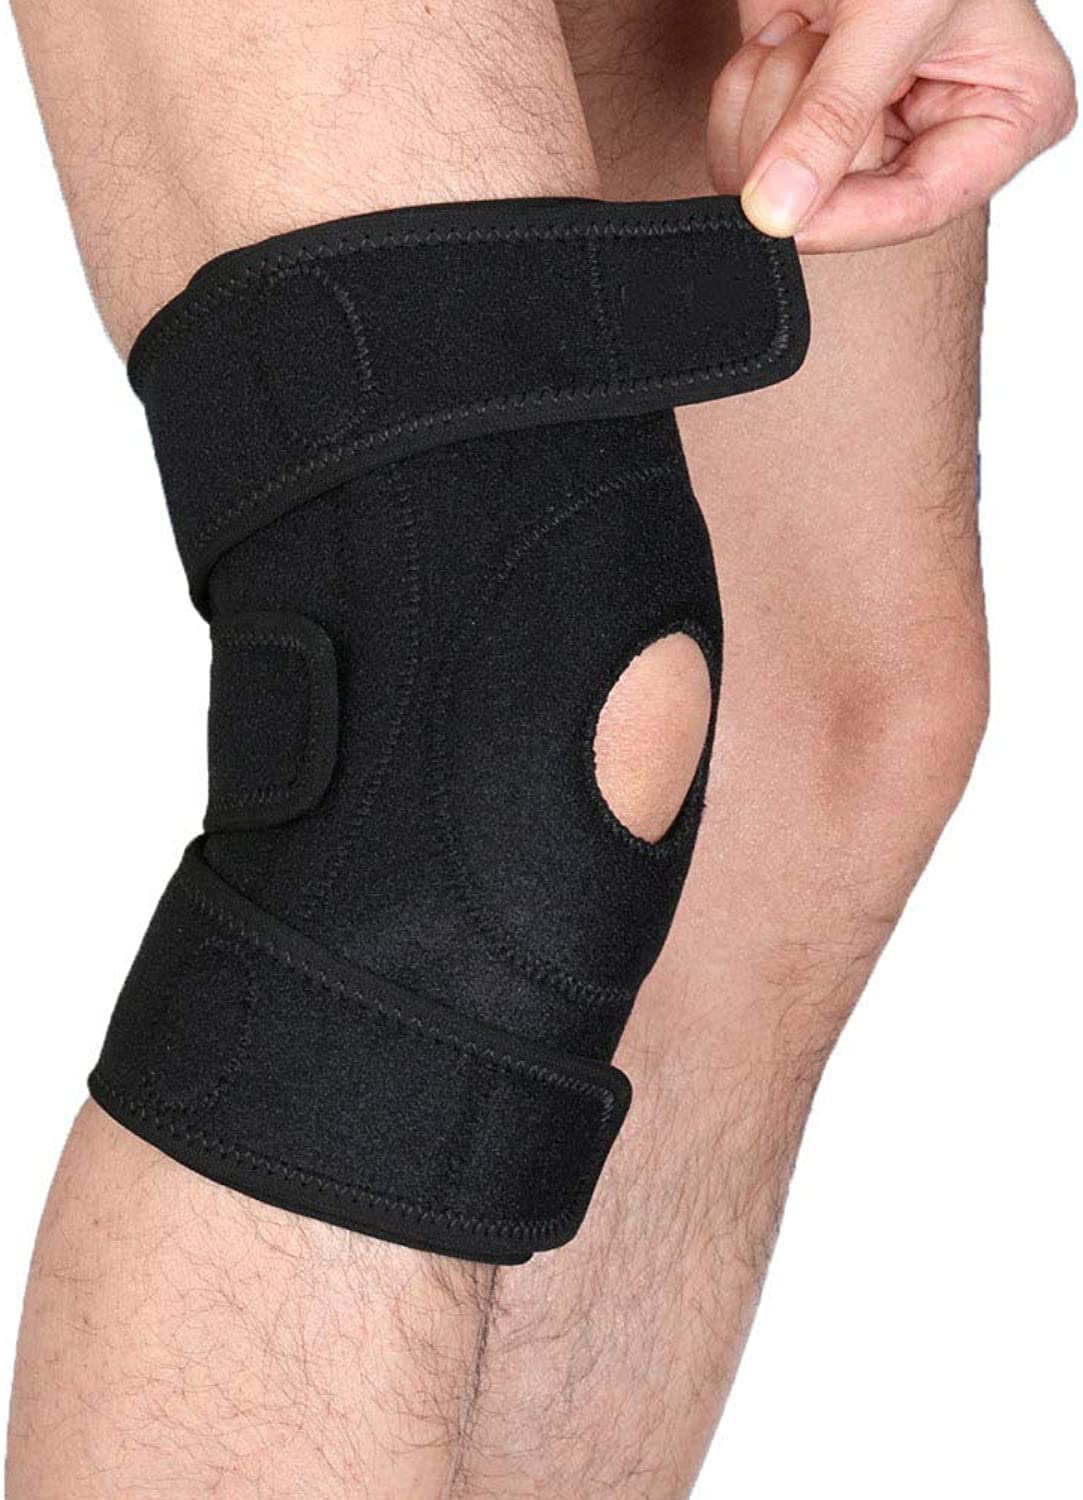 Myzixuan Widening Breathable Exercise Knee Predection Knee pad AntiSlip to Avoid Collision Knee Sleeve Gift